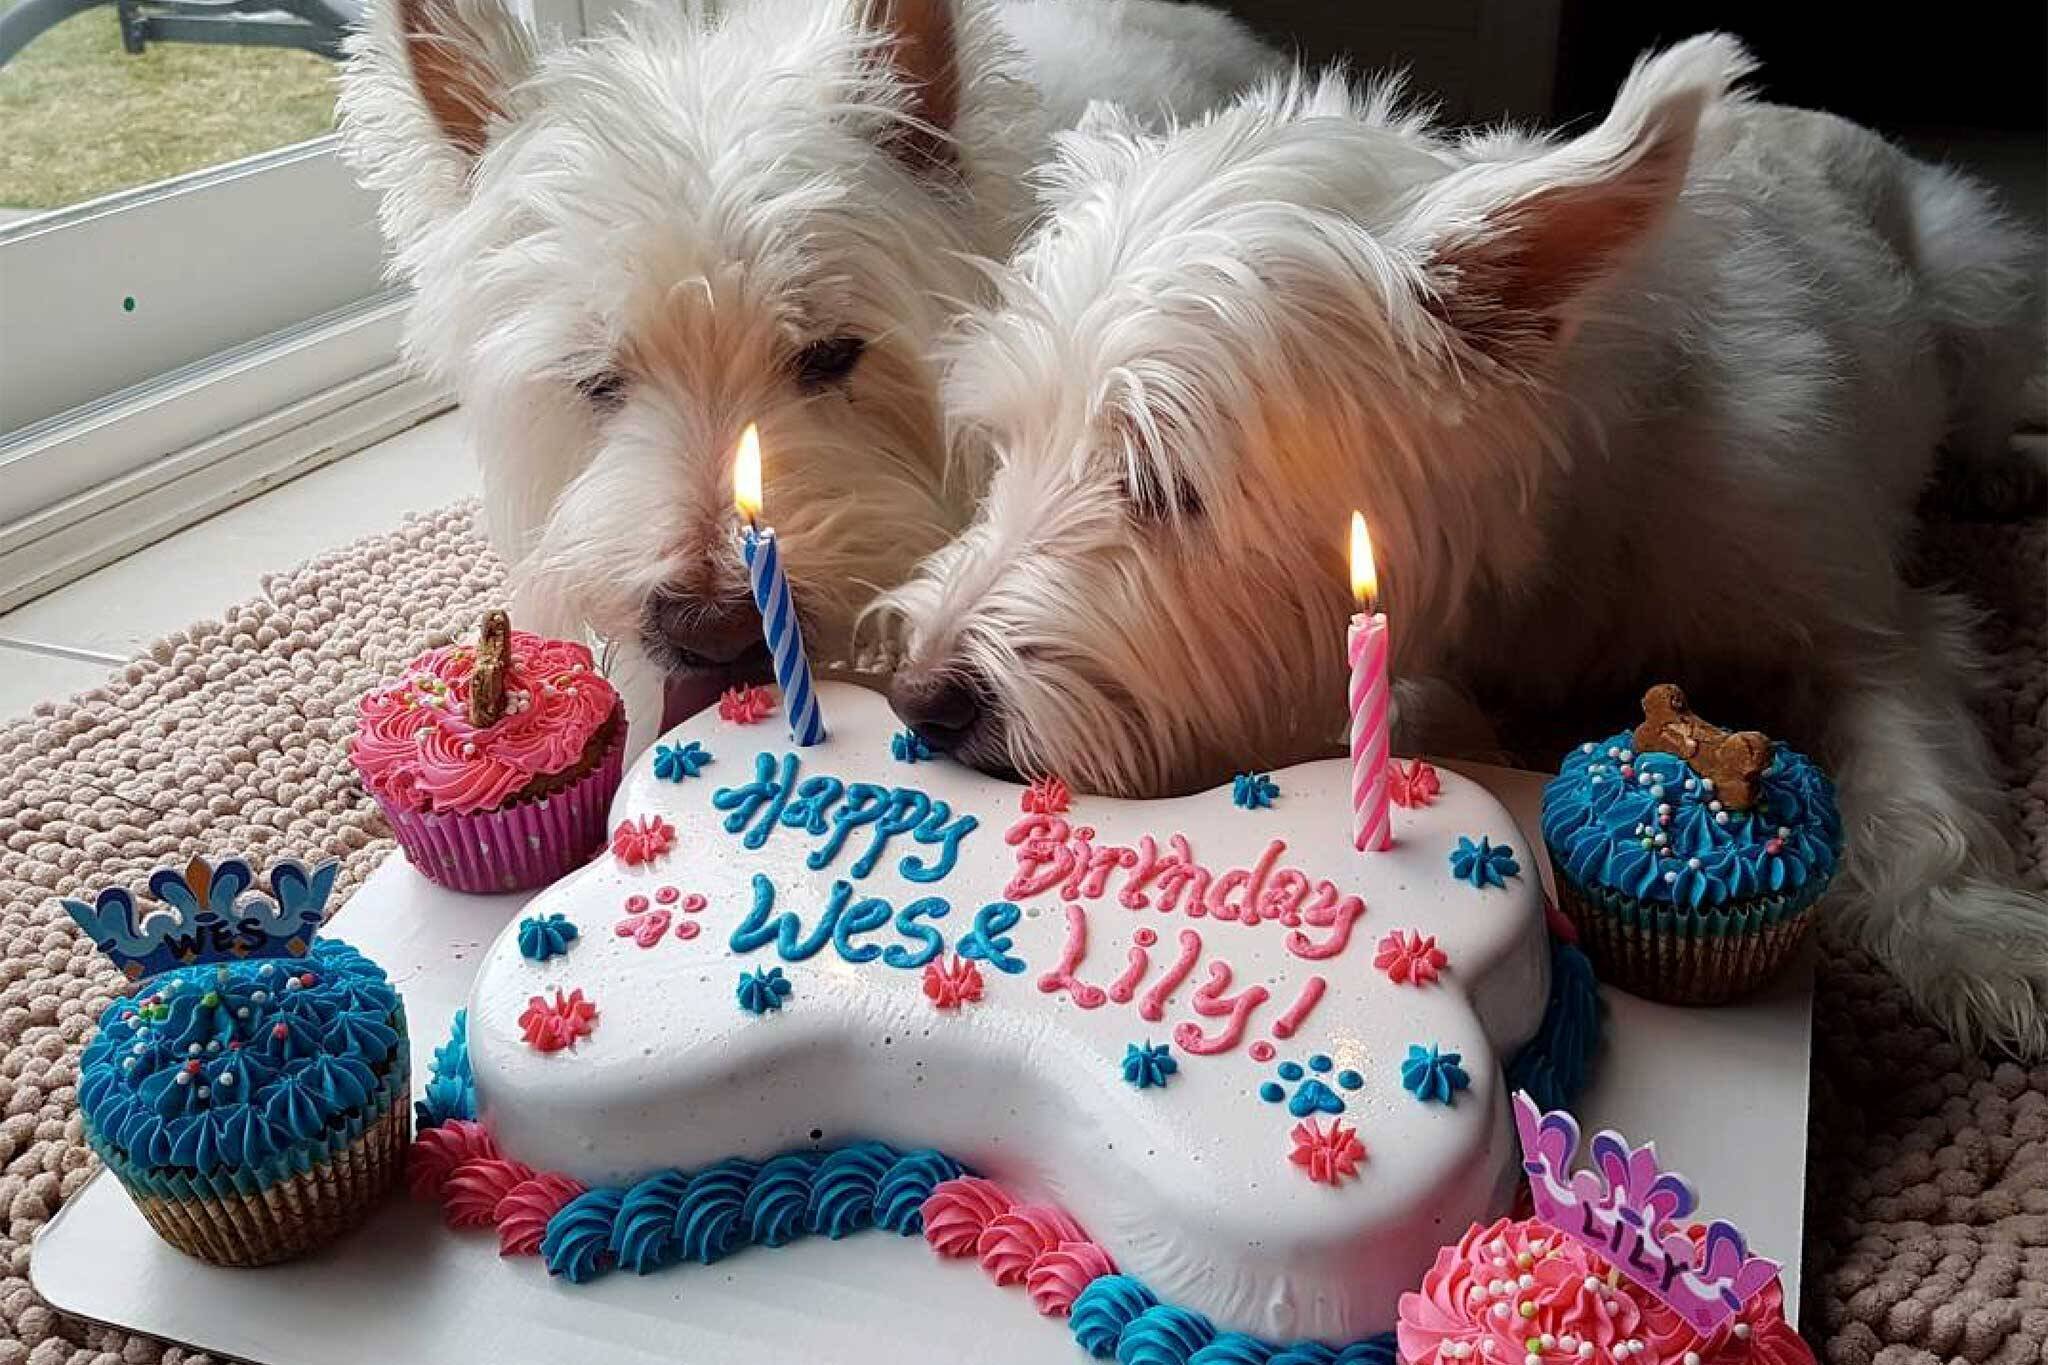 Sensational Toronto Bakery Will Make Your Dog A Birthday Cake Funny Birthday Cards Online Sheoxdamsfinfo